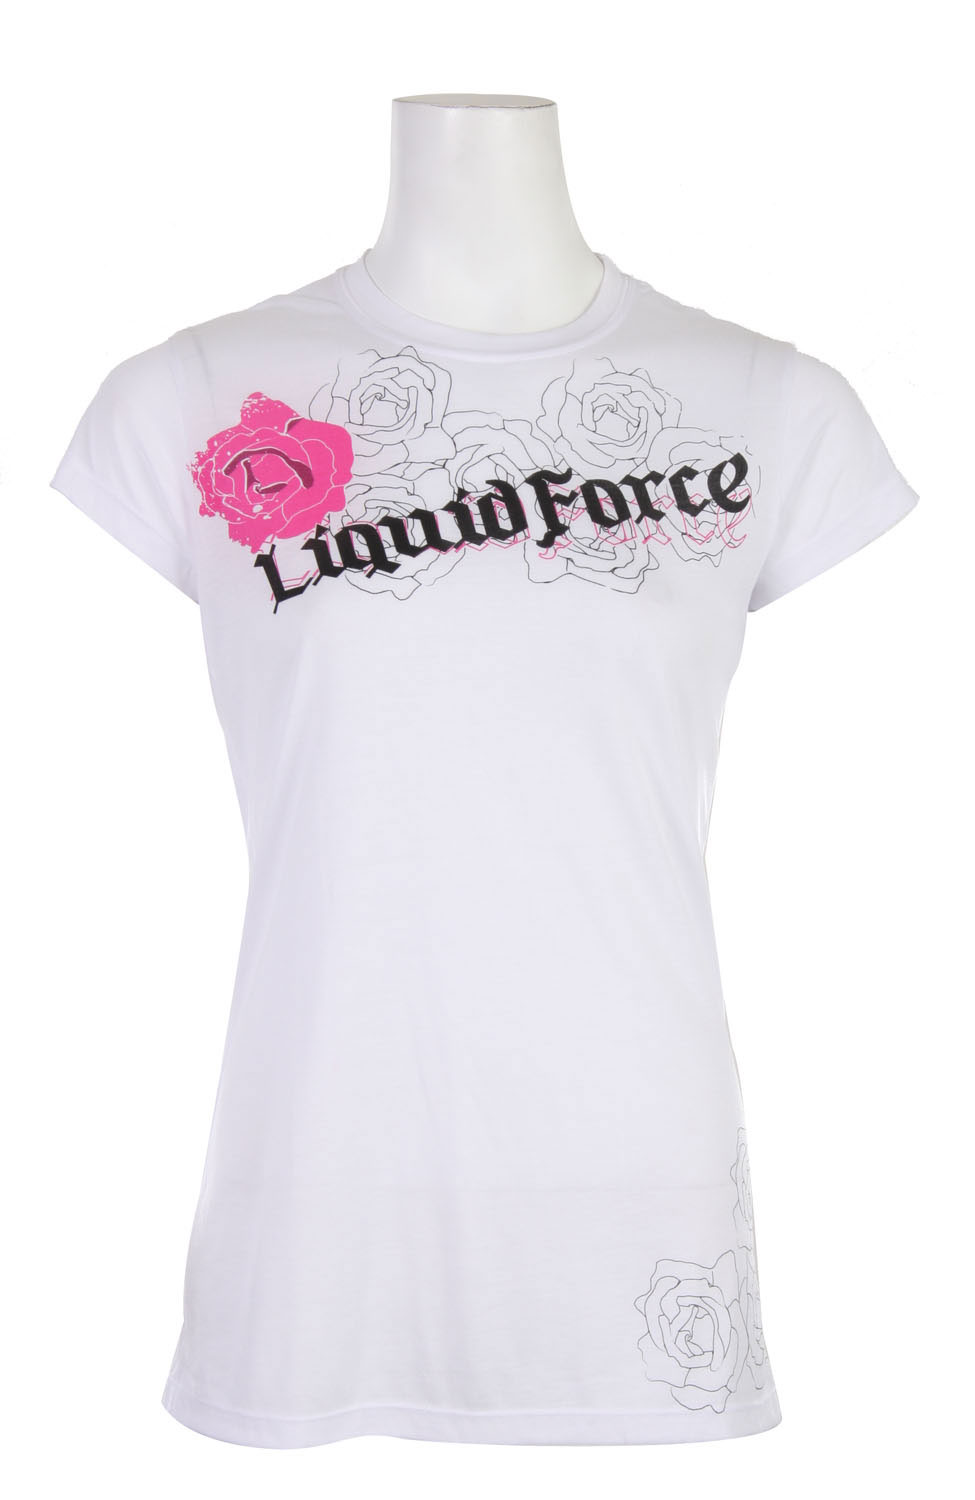 Key Features of The Liquid Force Rose By Name T-Shirt: Regular Fit Crew Neck Short Sleeve - $6.96